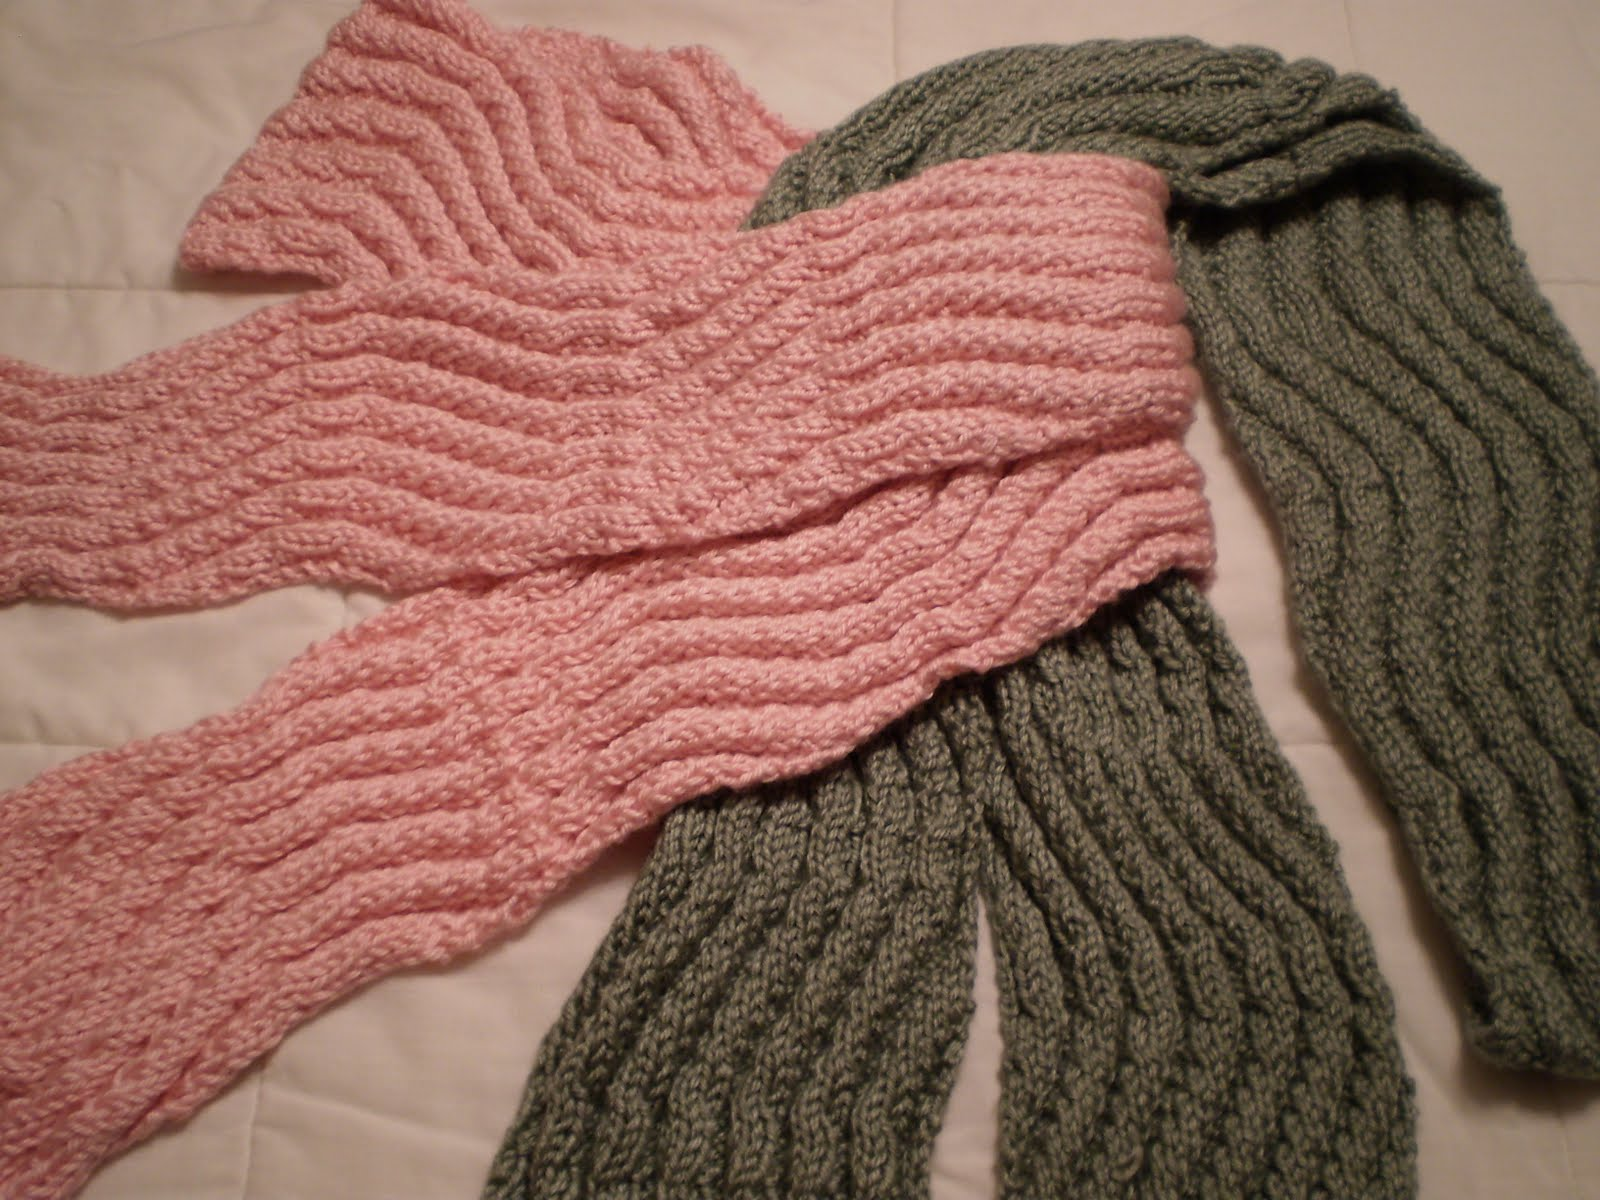 Knitting Patterns : Scarf knitting patterns gallery